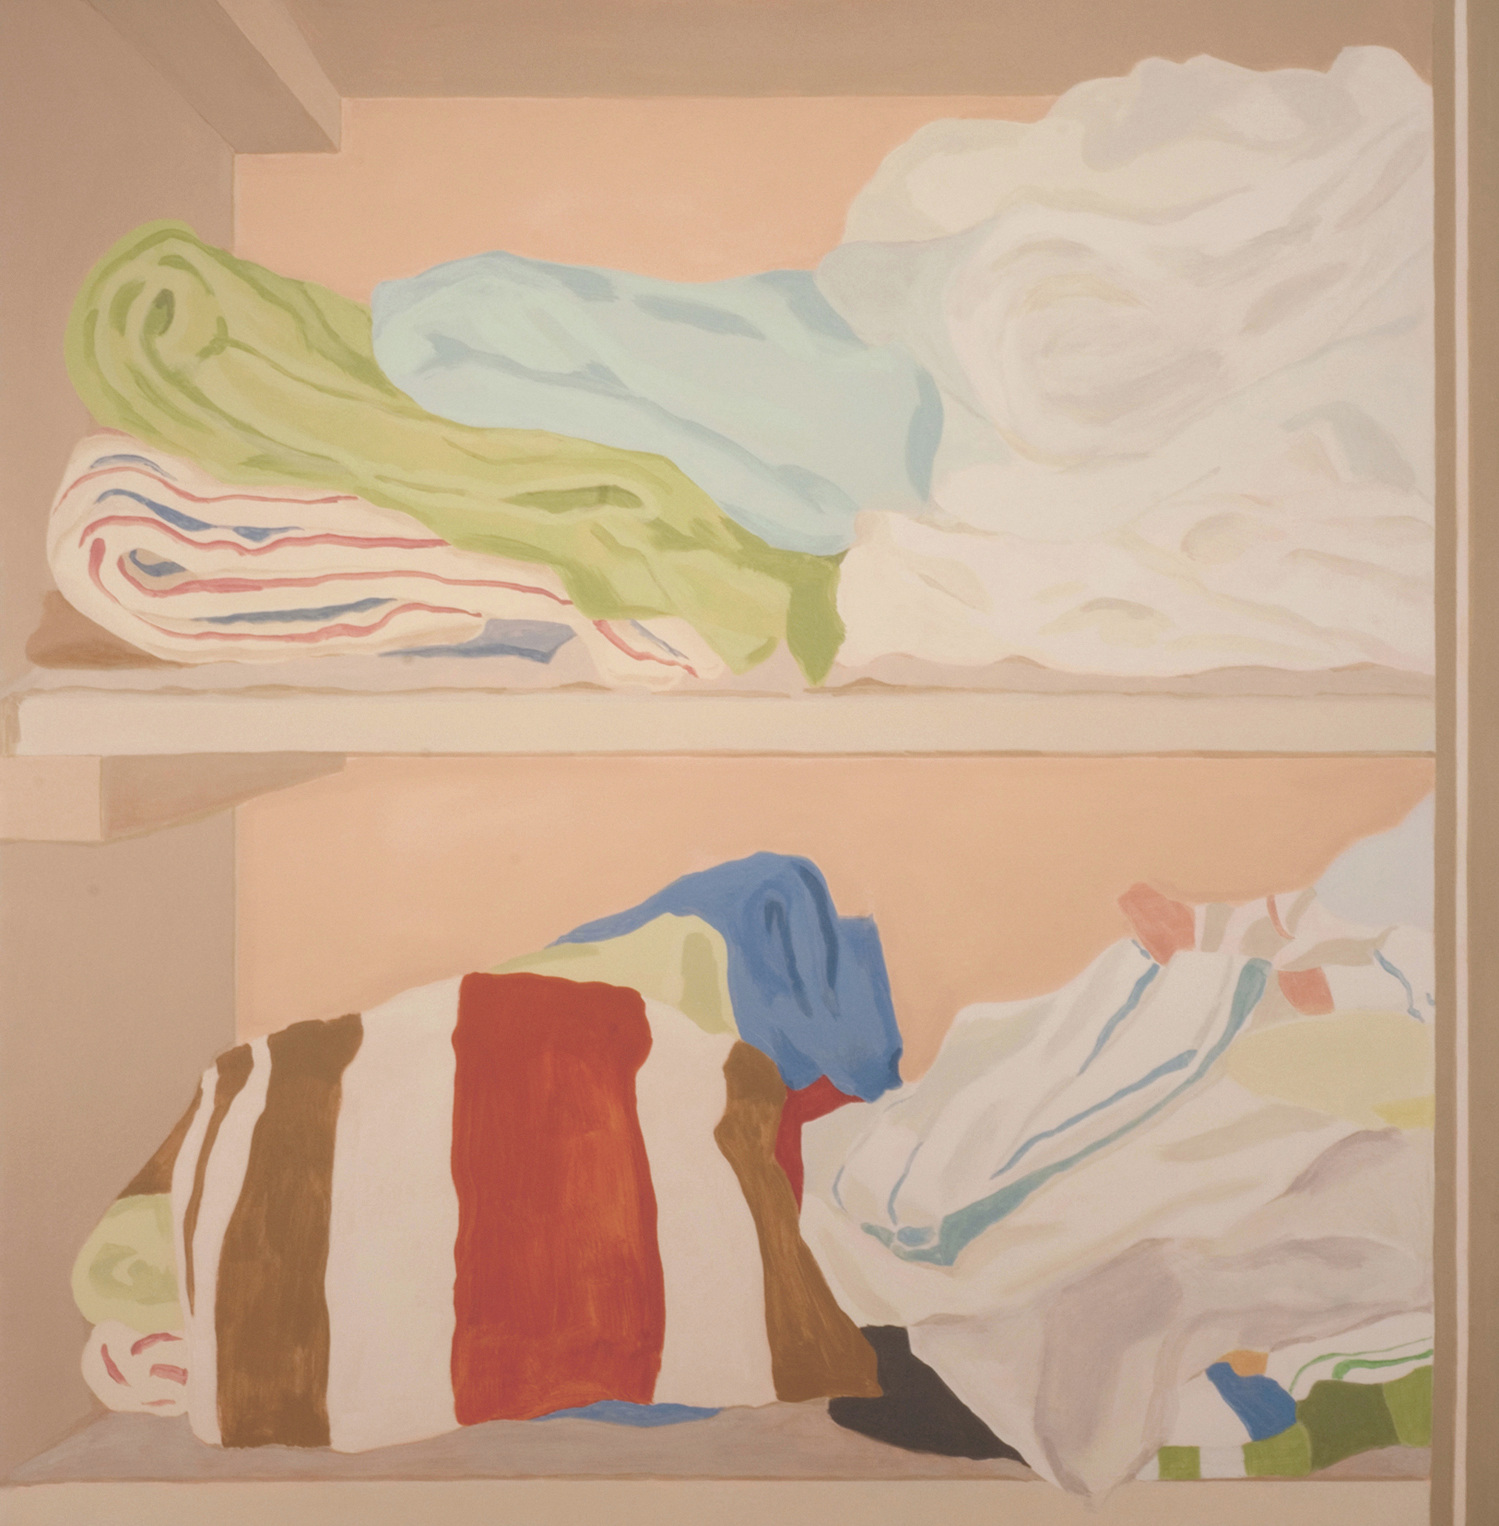 Linen Closet, acrylic on canvas, 67 x 66 inches, 2006.